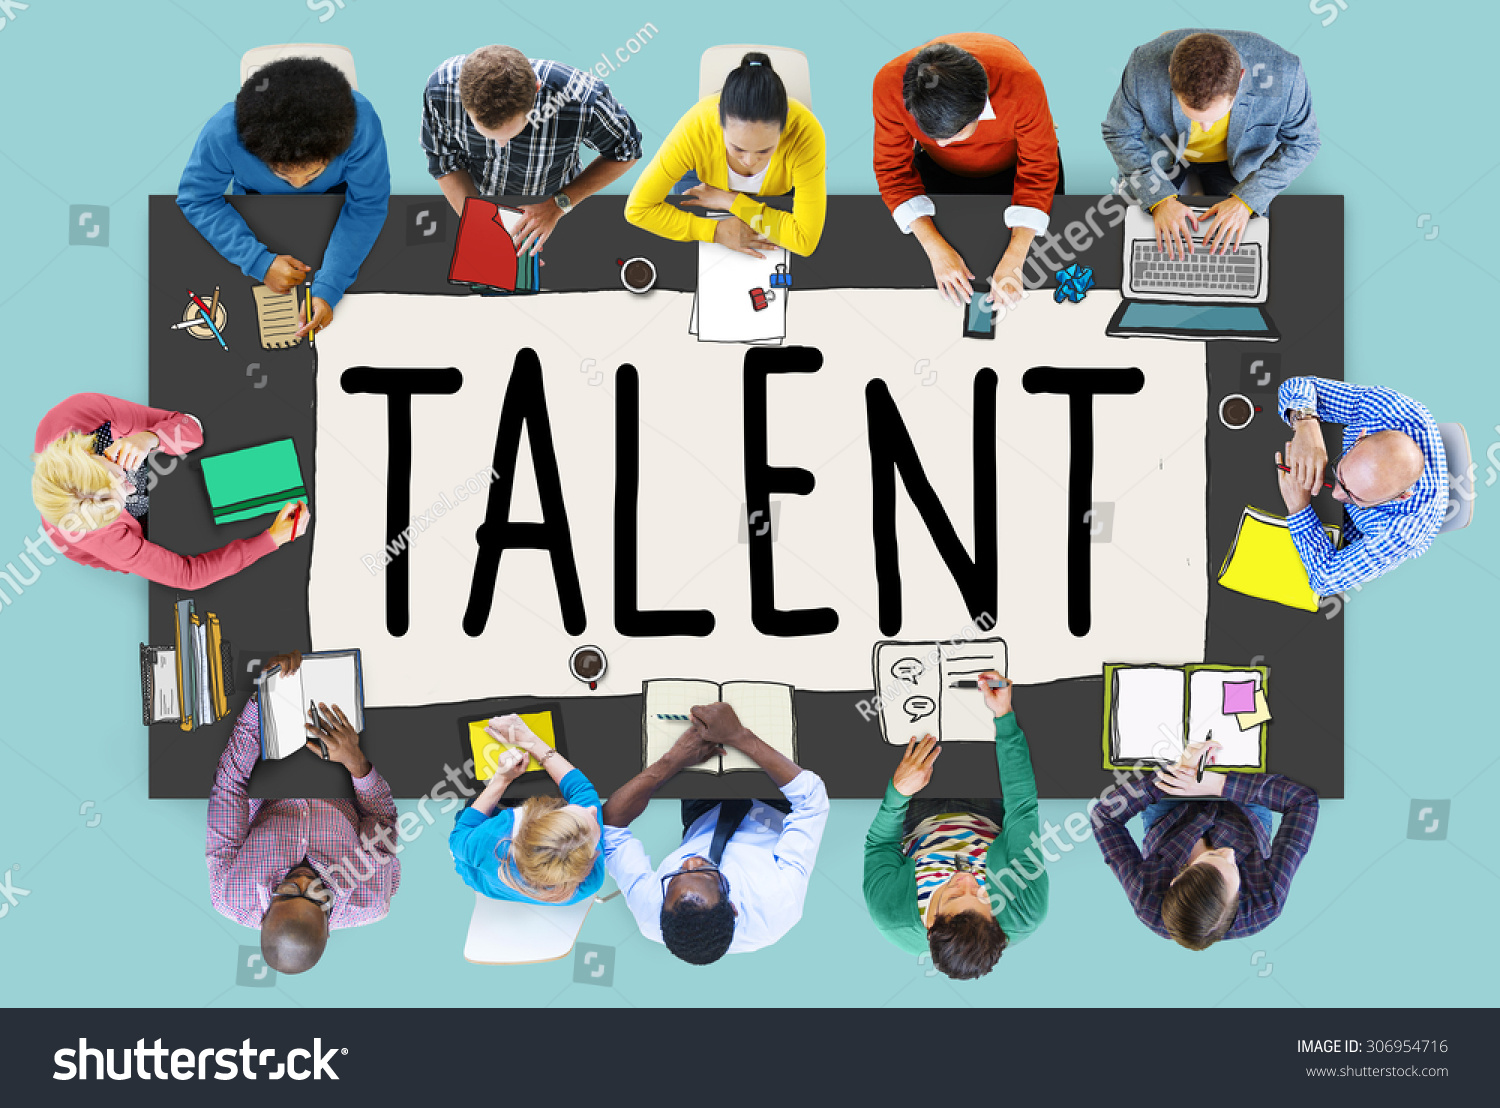 talent gifted skills abilities capability expertise stock photo talent gifted skills abilities capability expertise concept